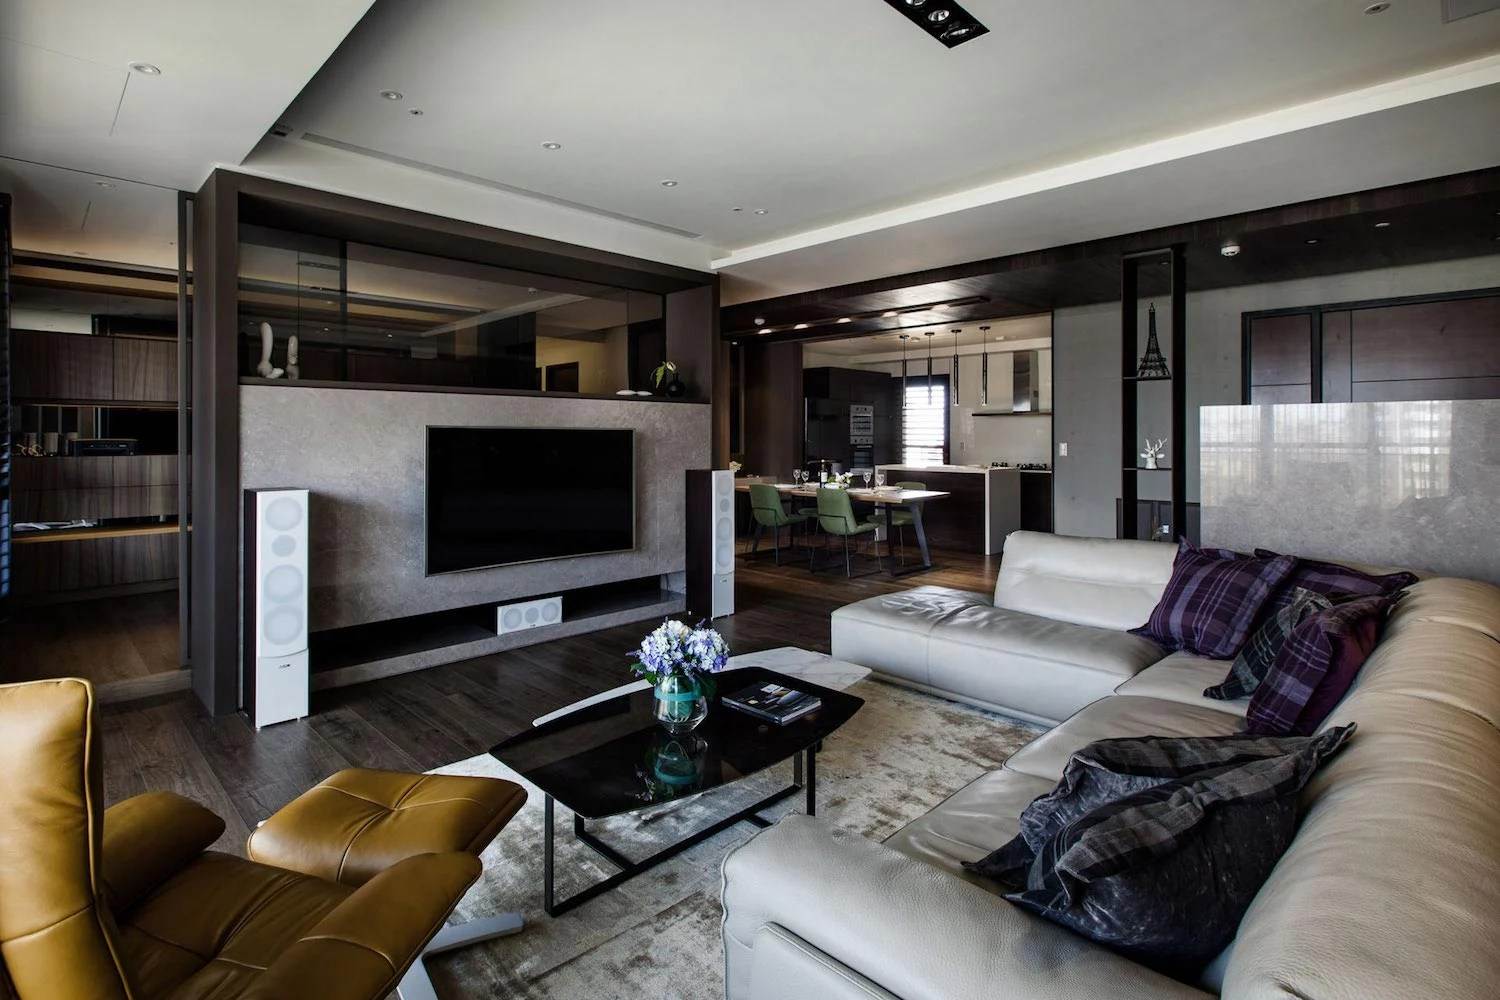 Lins Modern Apartment in Kaohsiung City Taiwan designed by PMD  CAANdesign  Architecture and